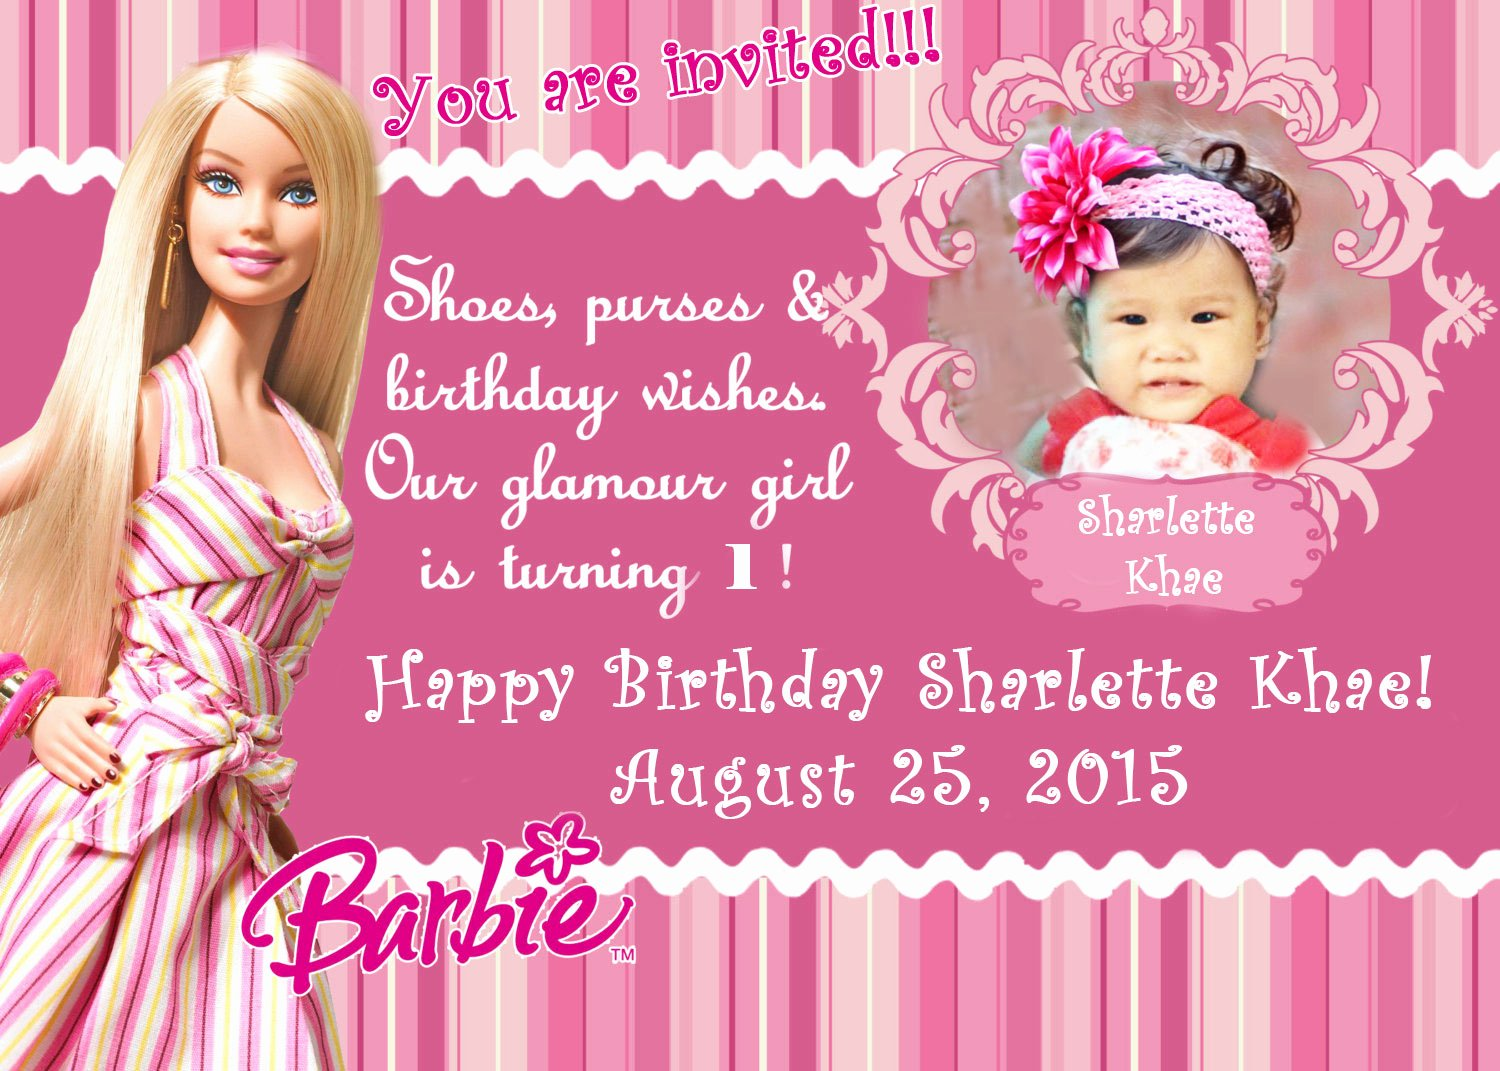 Barbie Invitations Templates Free Luxury Diy Barbie Invitation Nheng S Wonderland